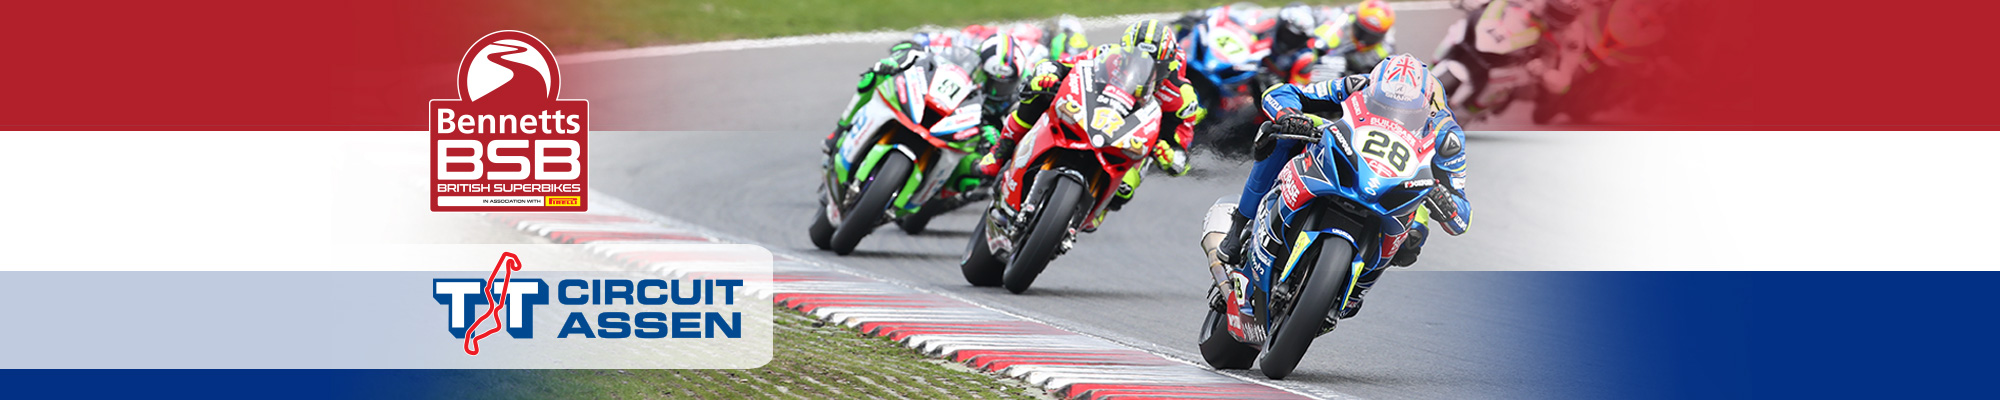 Bennetts British Superbike Championship